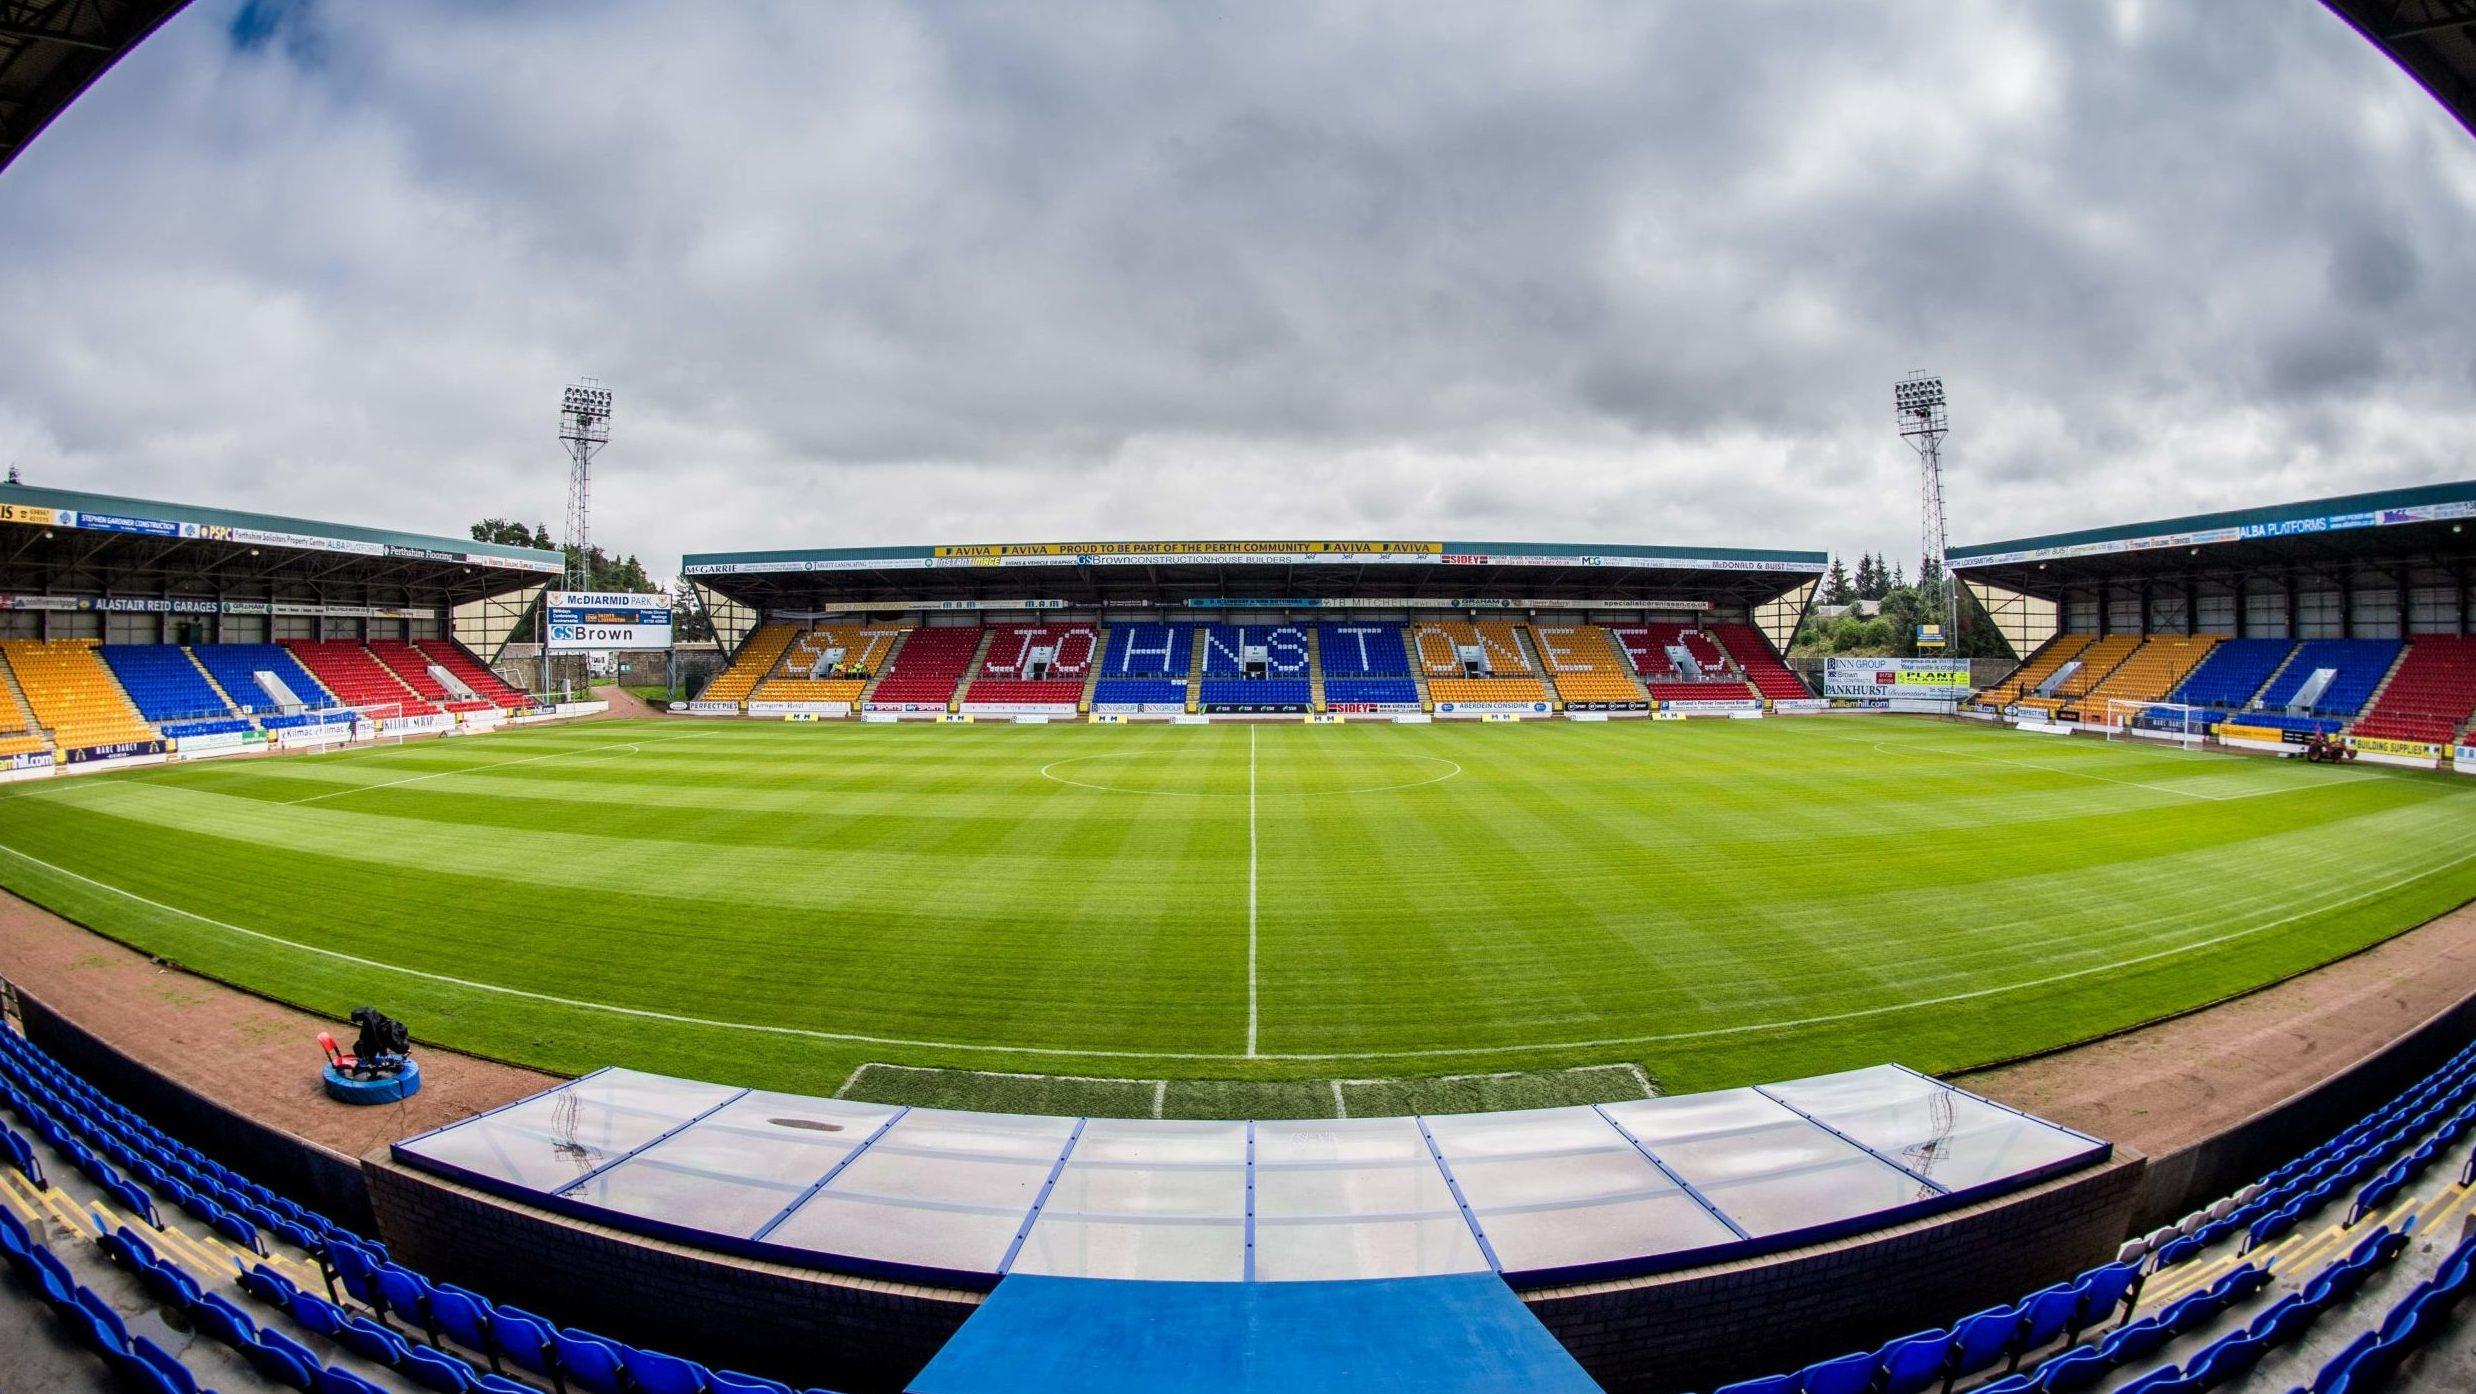 St Johnstone vs Aberdeen has been called off